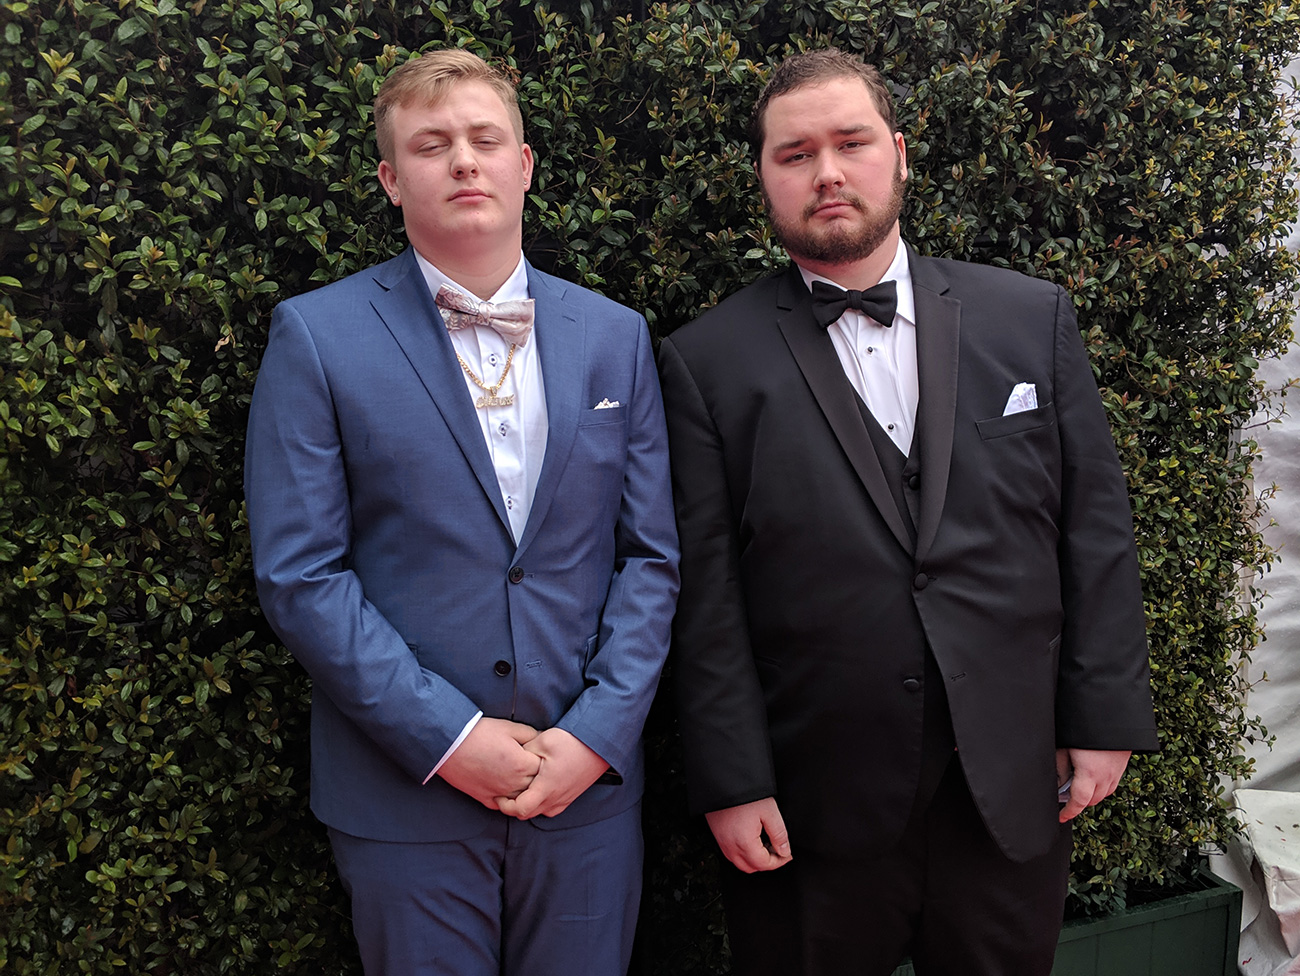 Drew McMains and his songwriting partner, David Bond, on the red carpet at the 2019 Grammy Awards